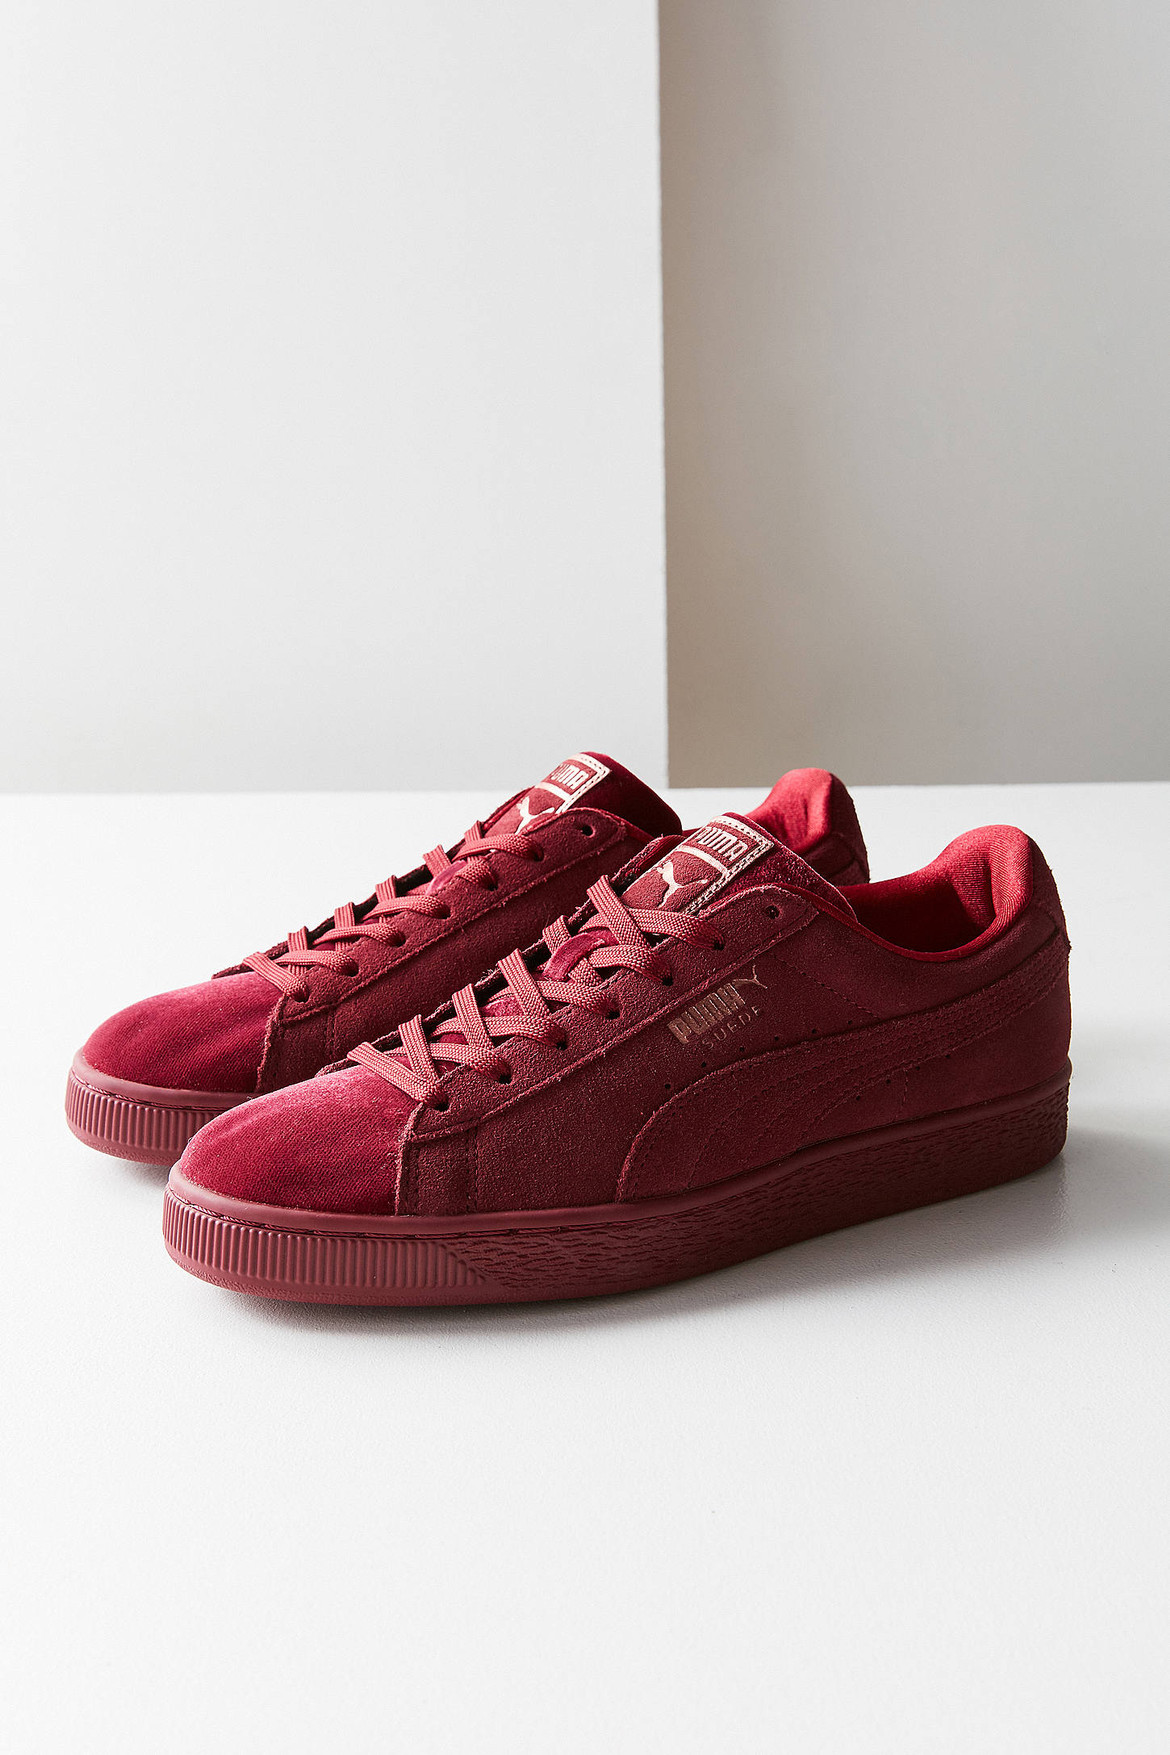 the latest 0aba1 0c54e PUMA's Suede Classic Velvet in Maroon Red | HYPEBAE